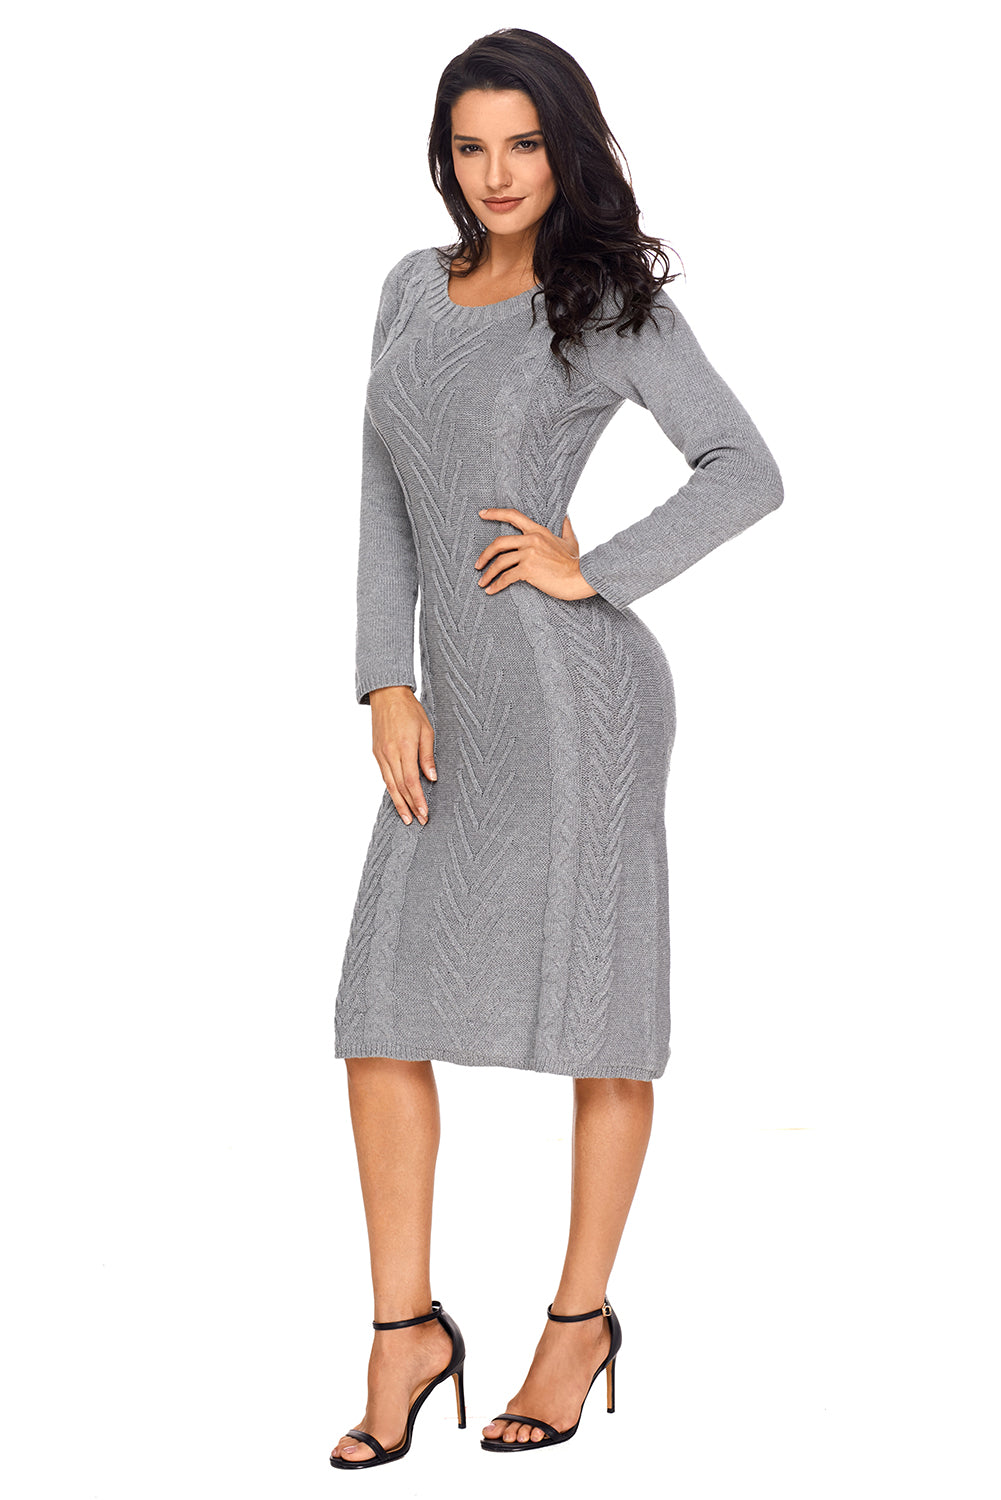 Gray Womens Hand Knitted Sweater Dress